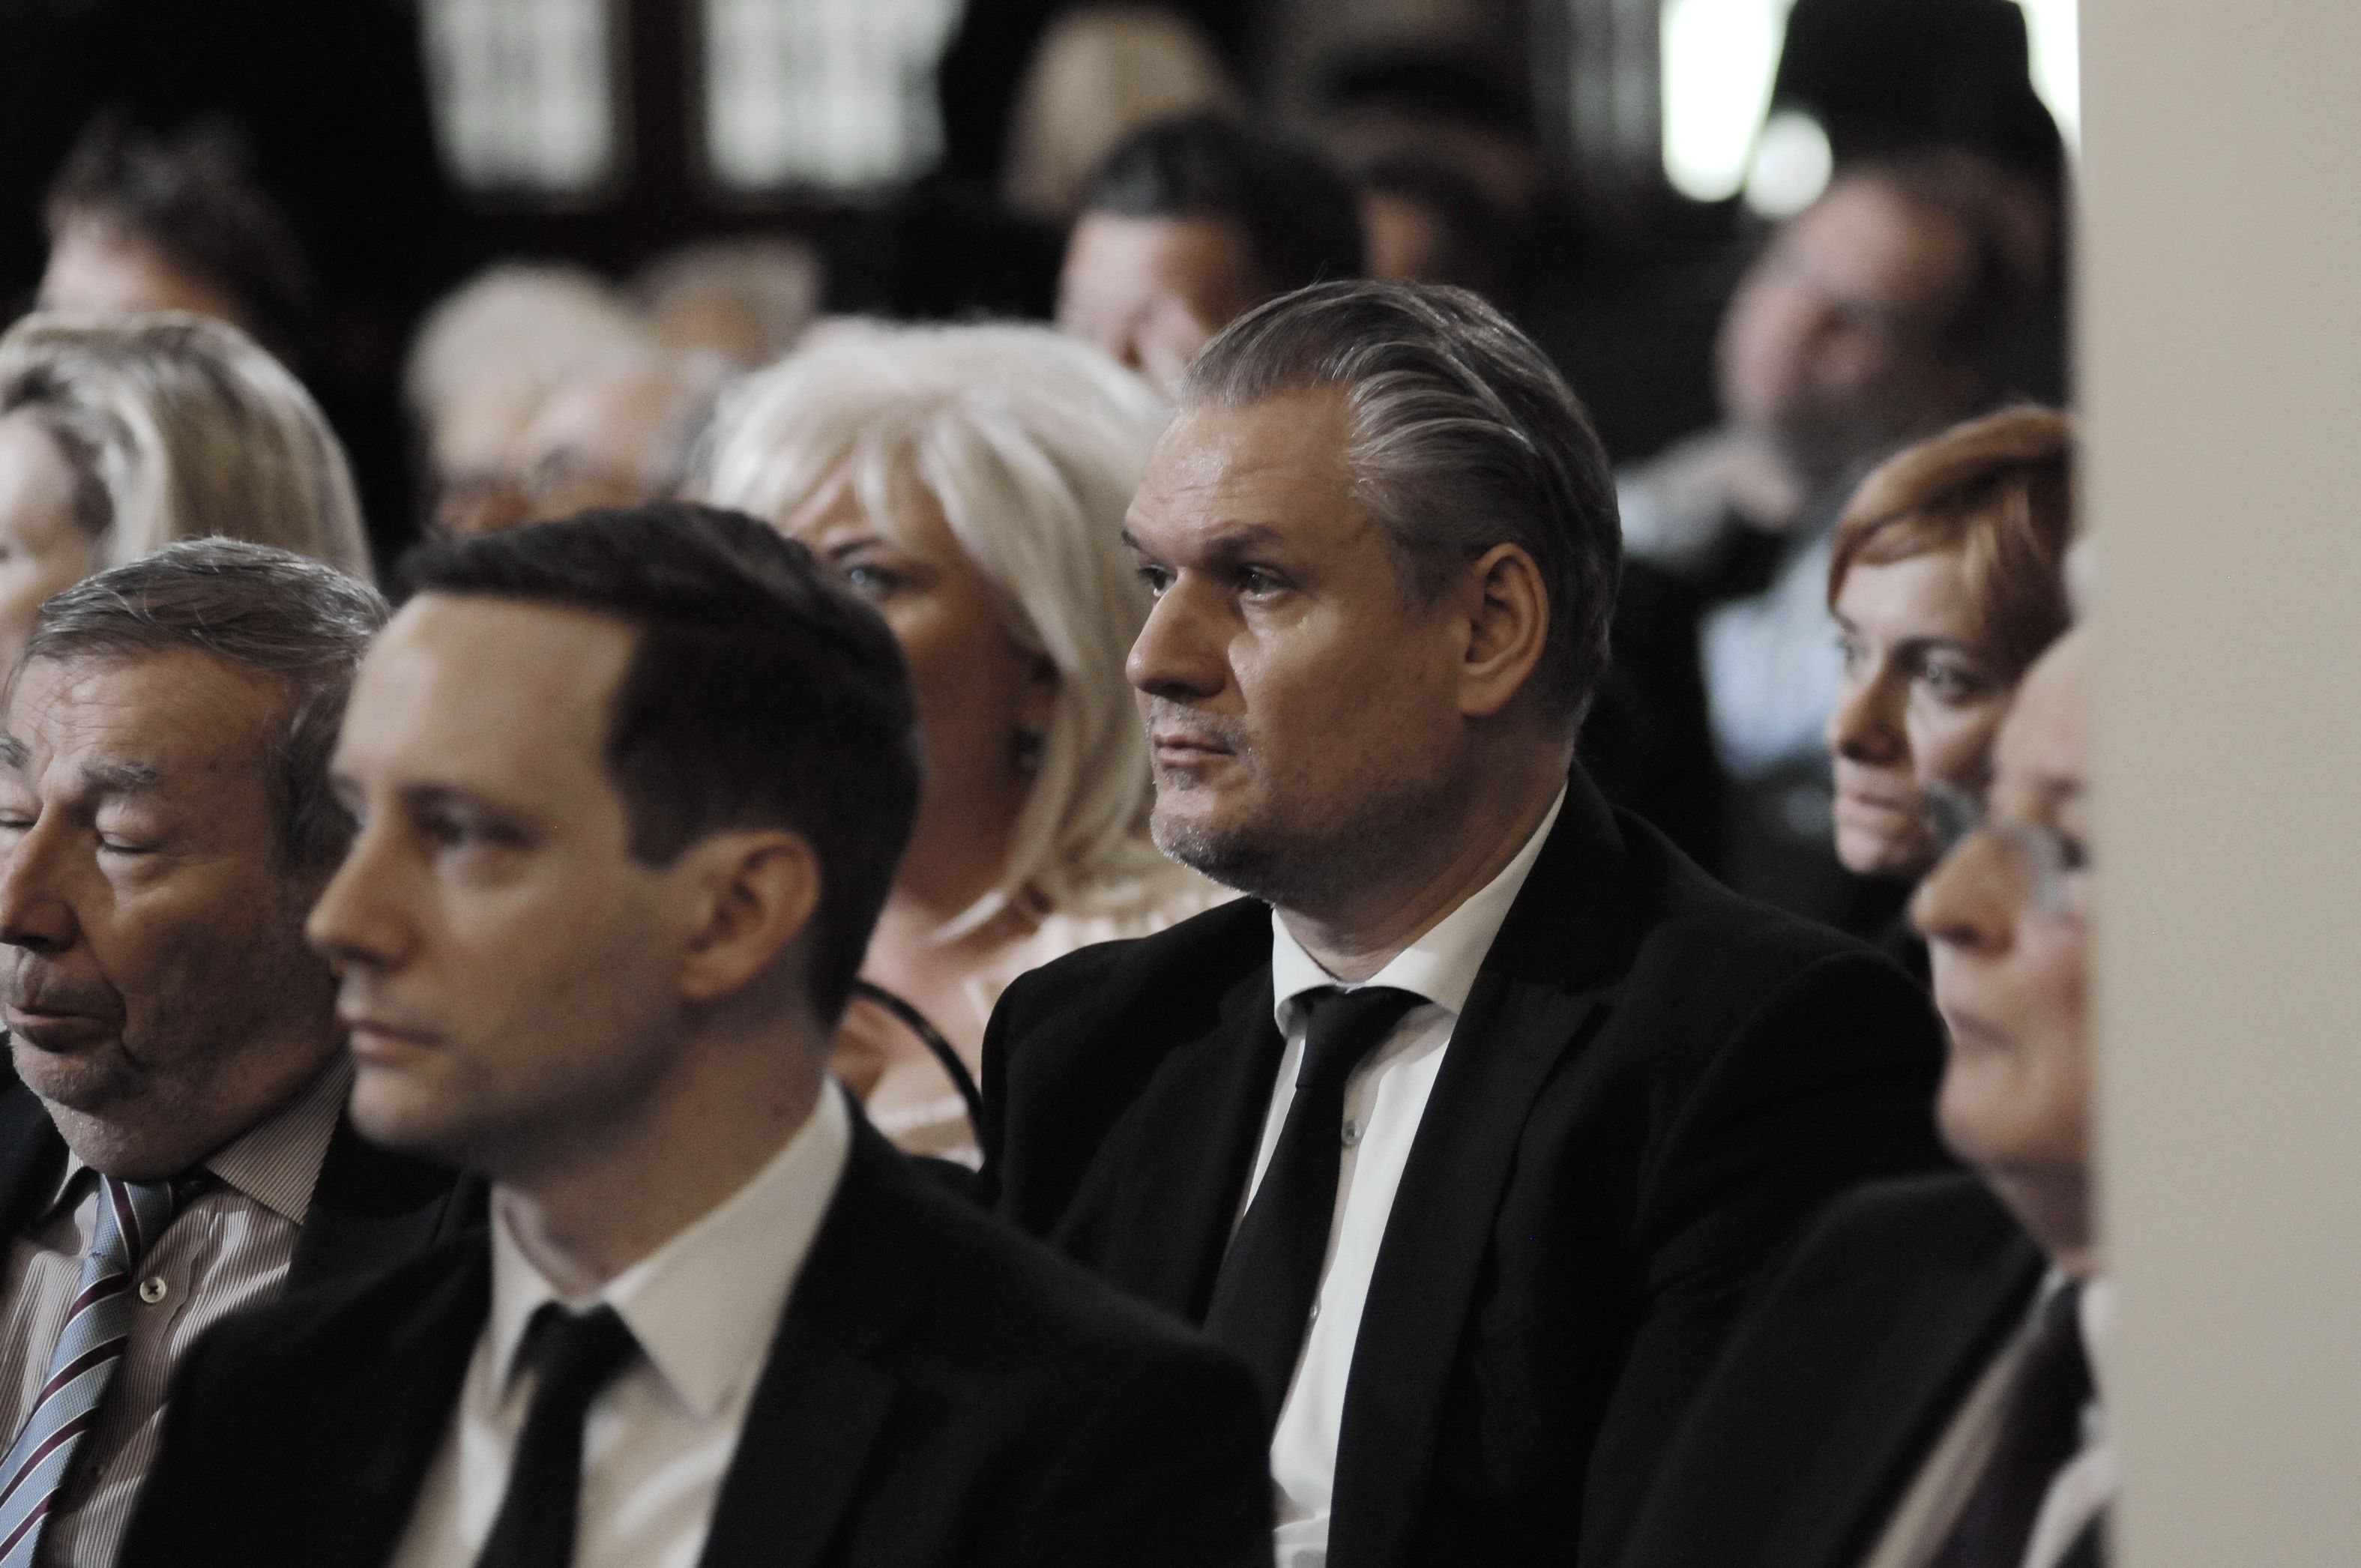 State Secretary for European Union Affairs at the Office of the Prime Minister of Hungary and Head of the Hungarian Delegation to the IHRA, Szabolcs Takács, at the Memorial Day of the Hungarian Victims of the Holocaust in Budapest.